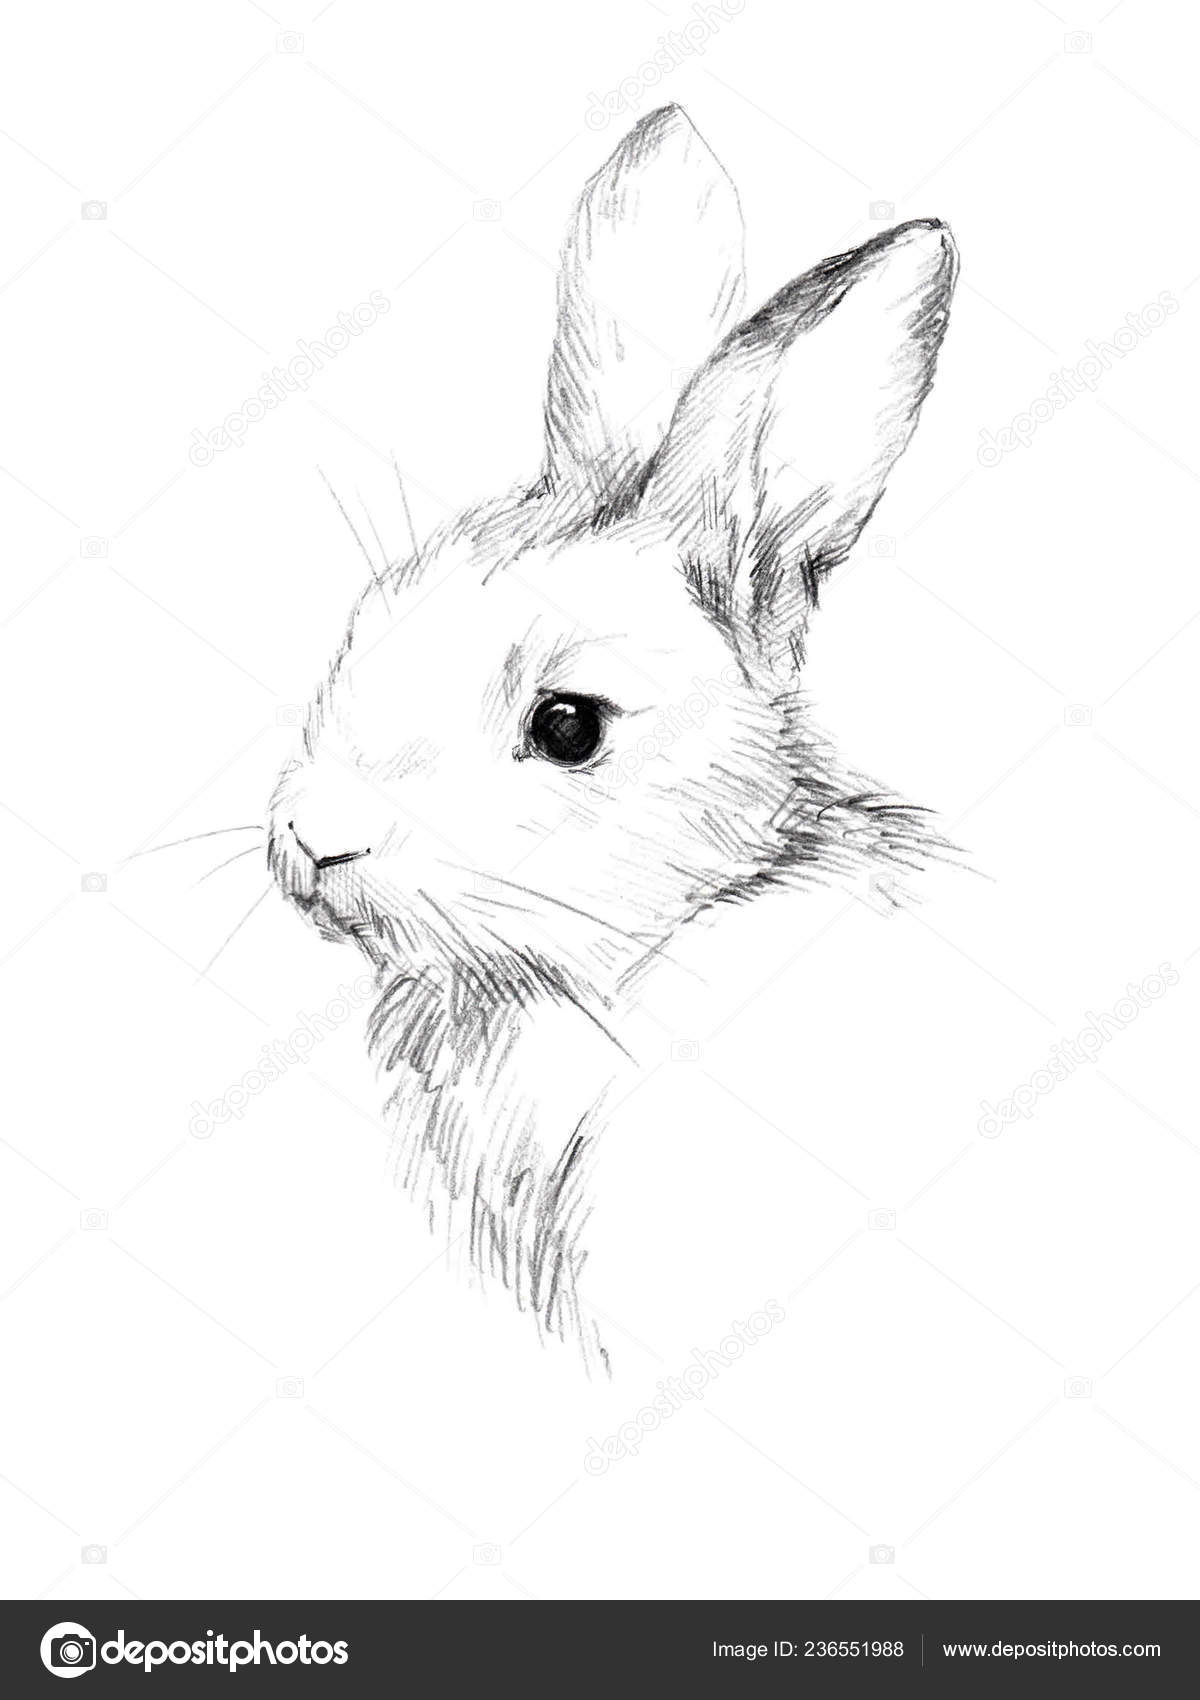 Sketch rabbit small furry pet pencil sketch stock photo